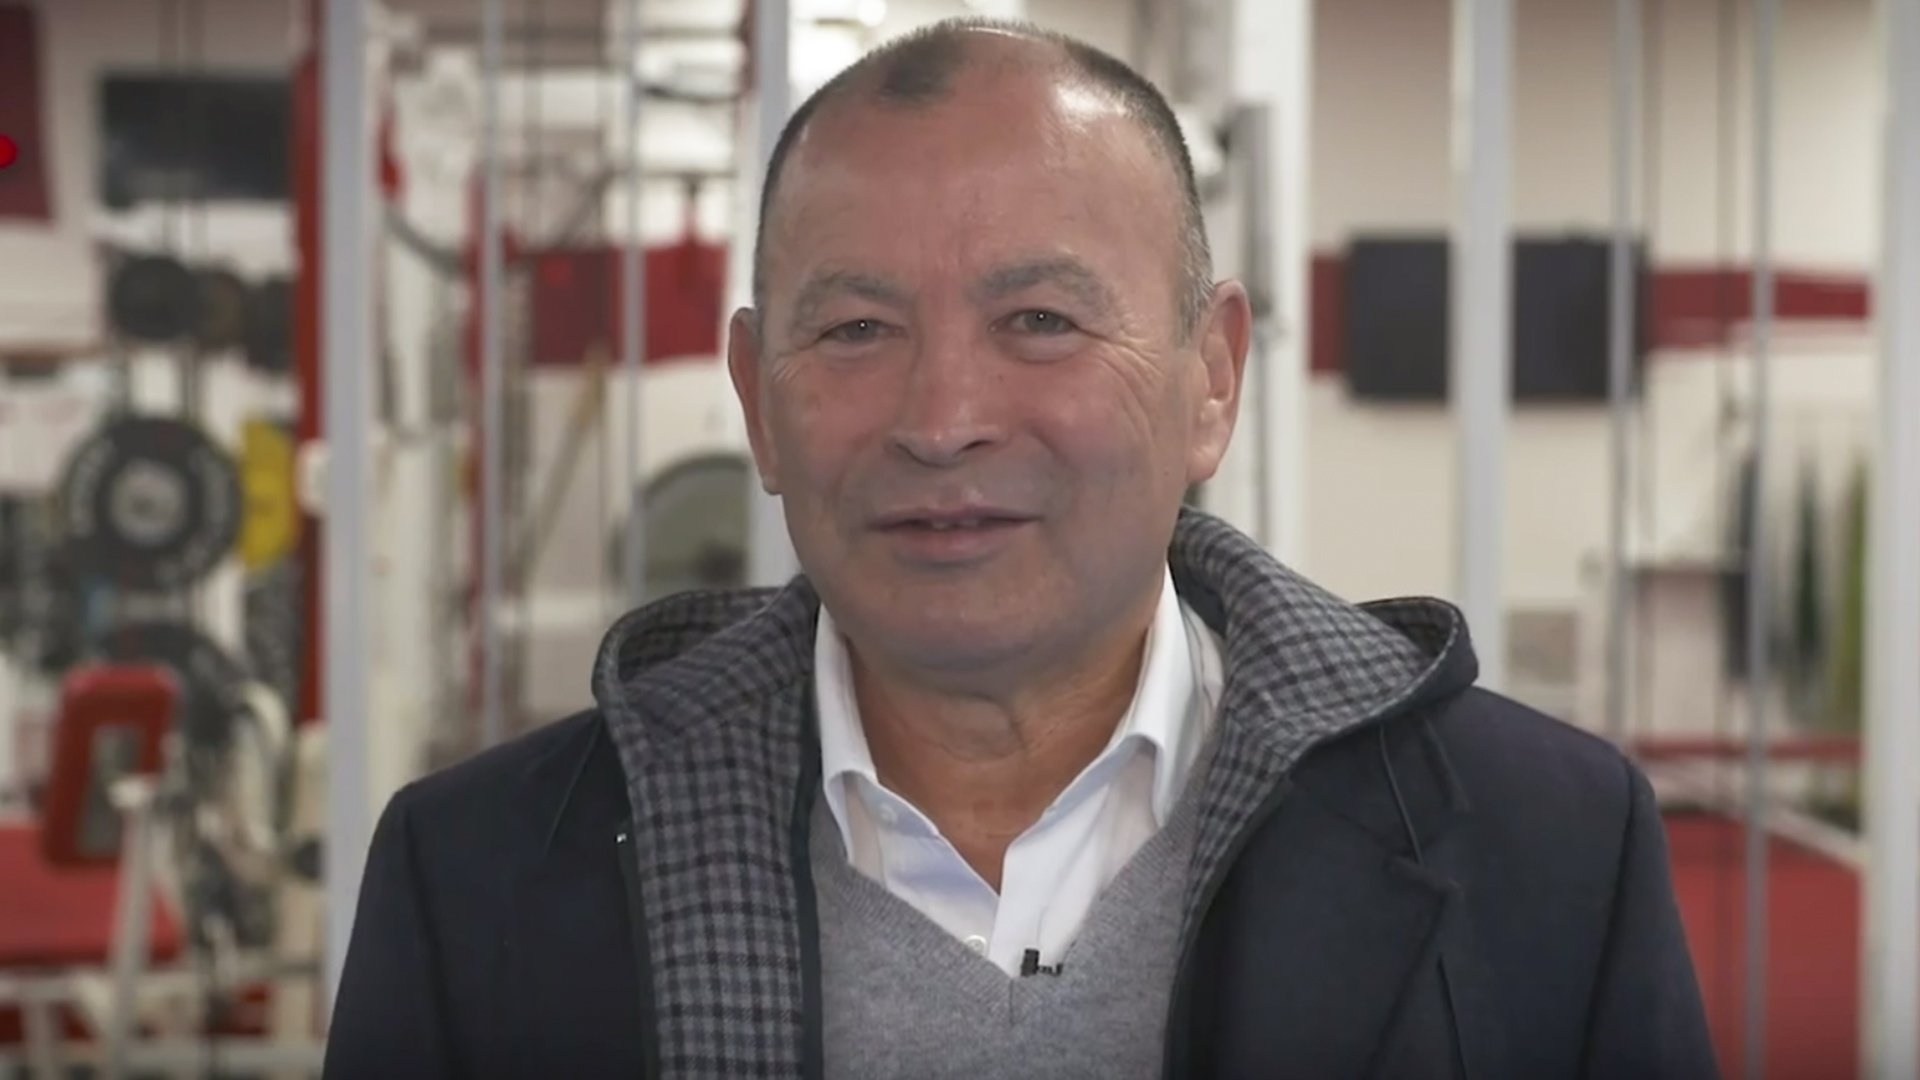 Eddie Jones goes full savage on France and their Six Nations chances in video